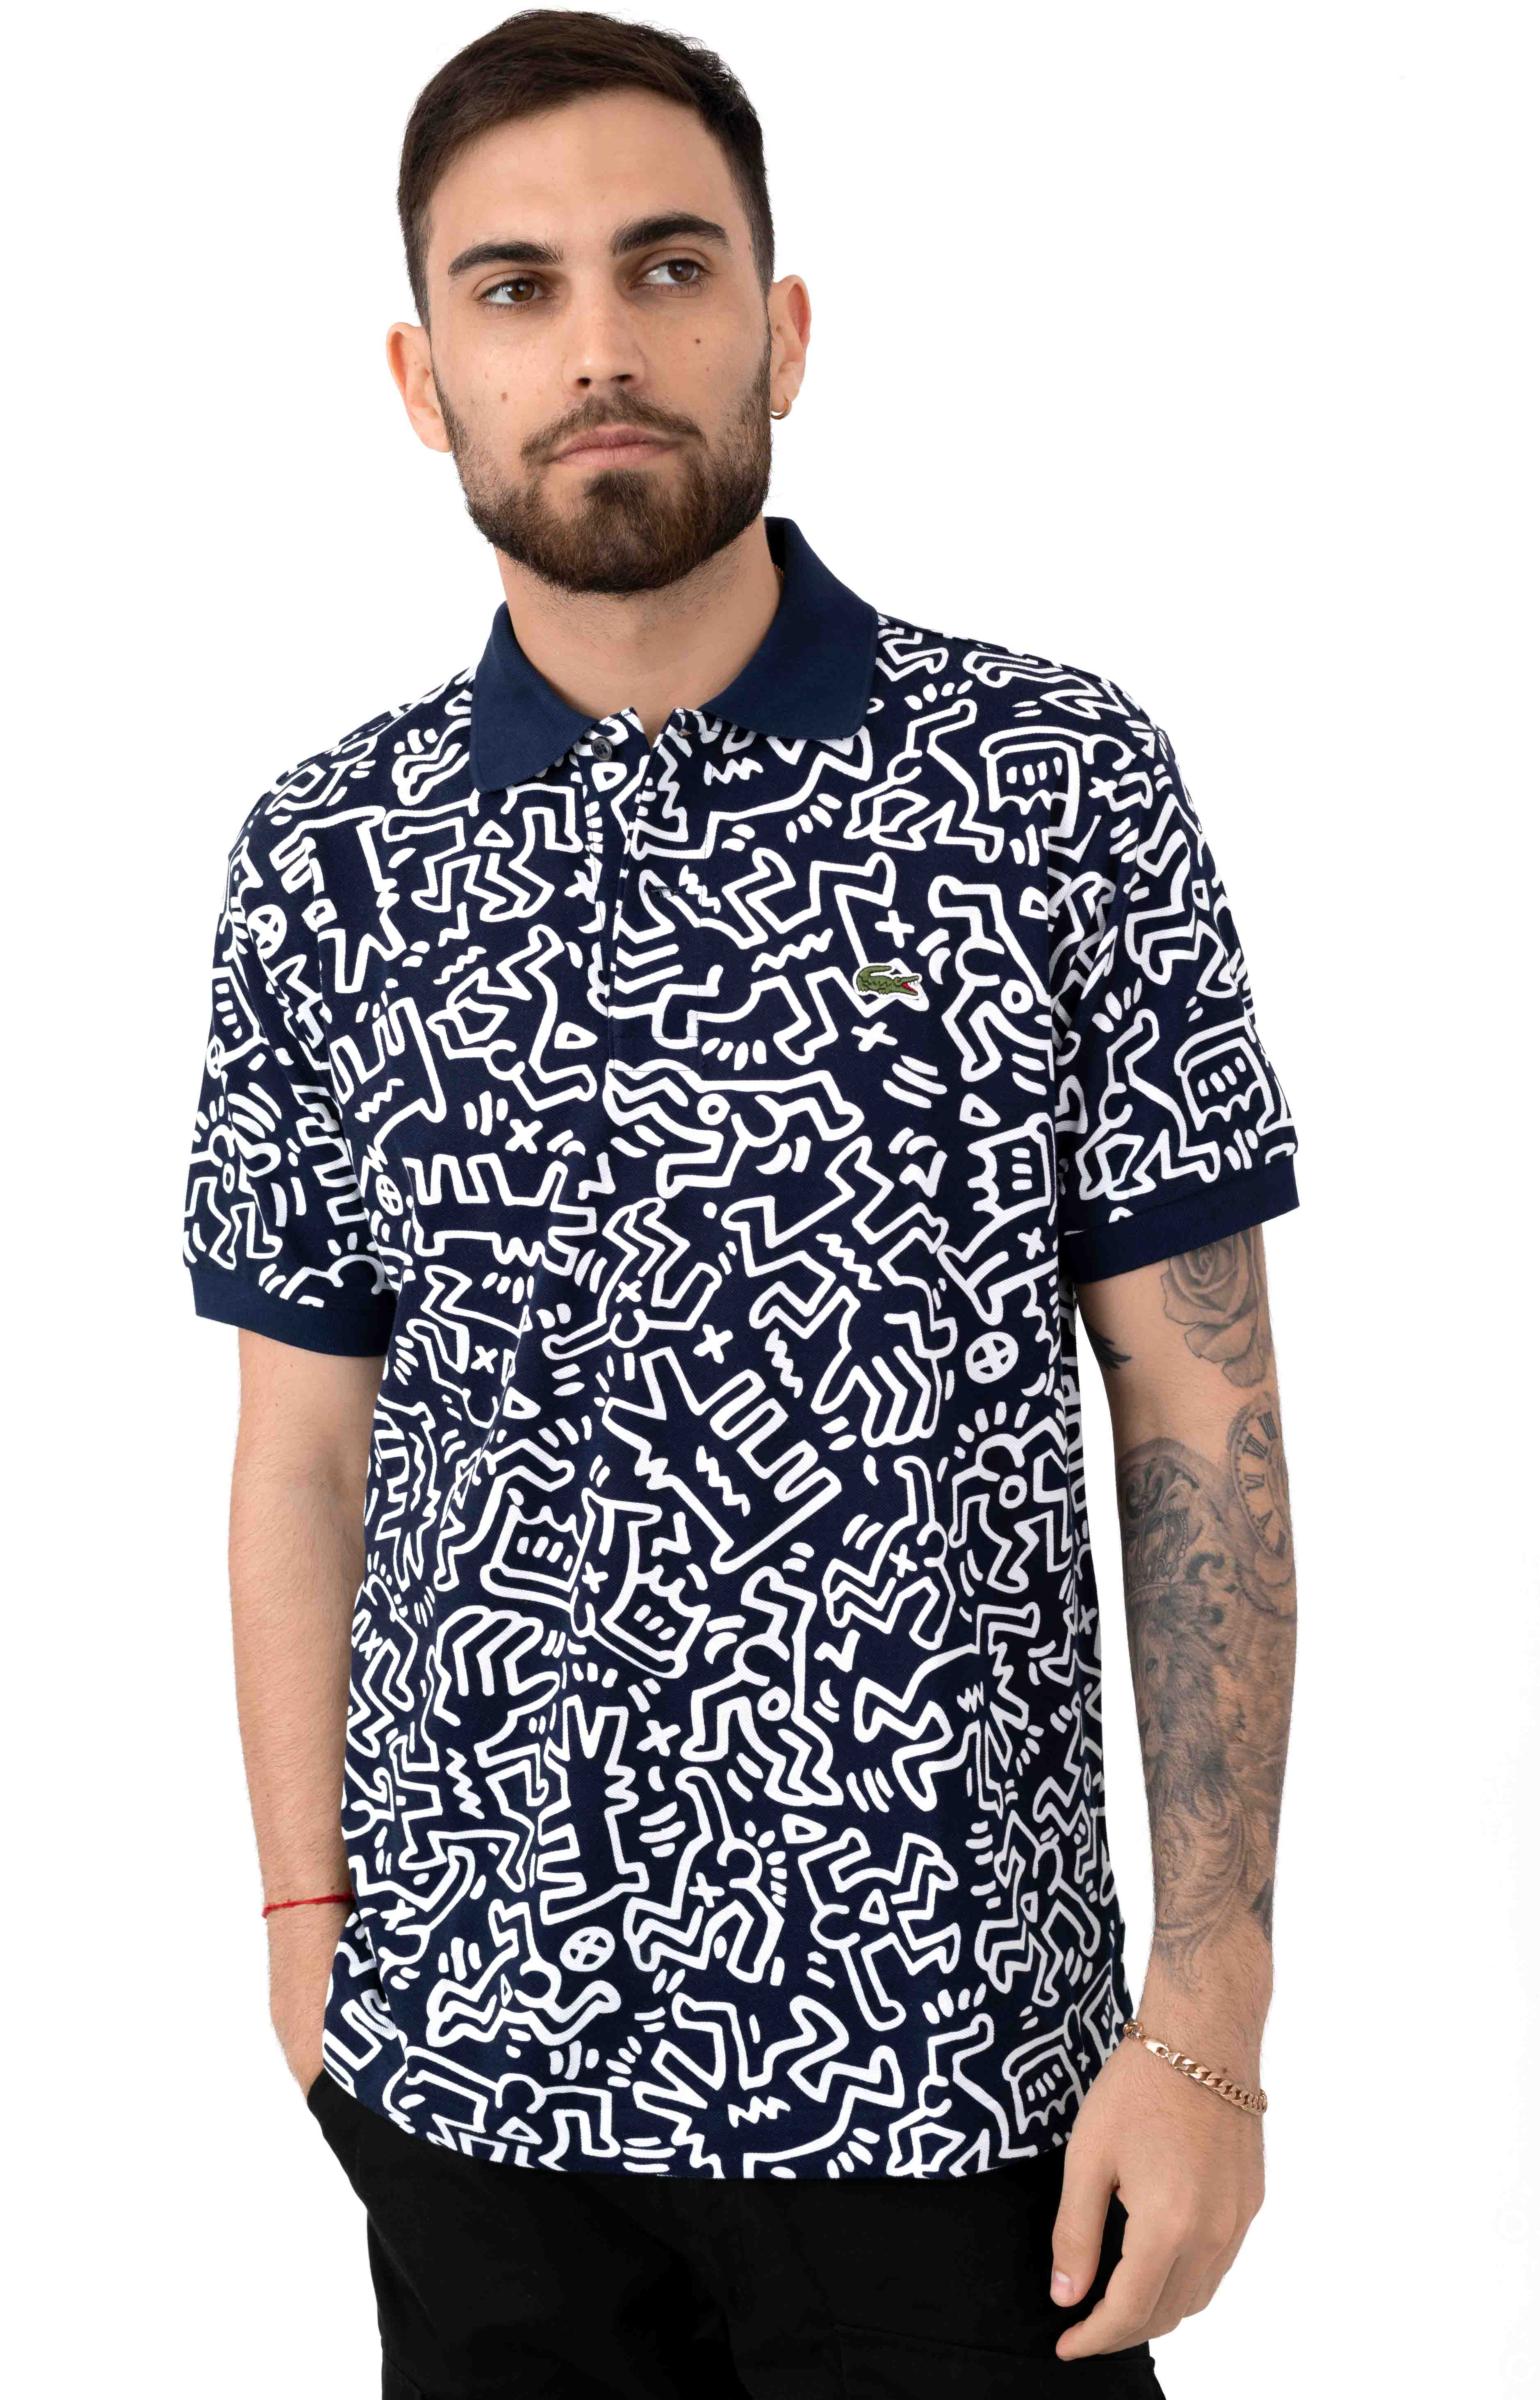 79481a74 Print Prique Polo - Navy/White. Loading... Home · Brands · Lacoste x Keith  Haring ...